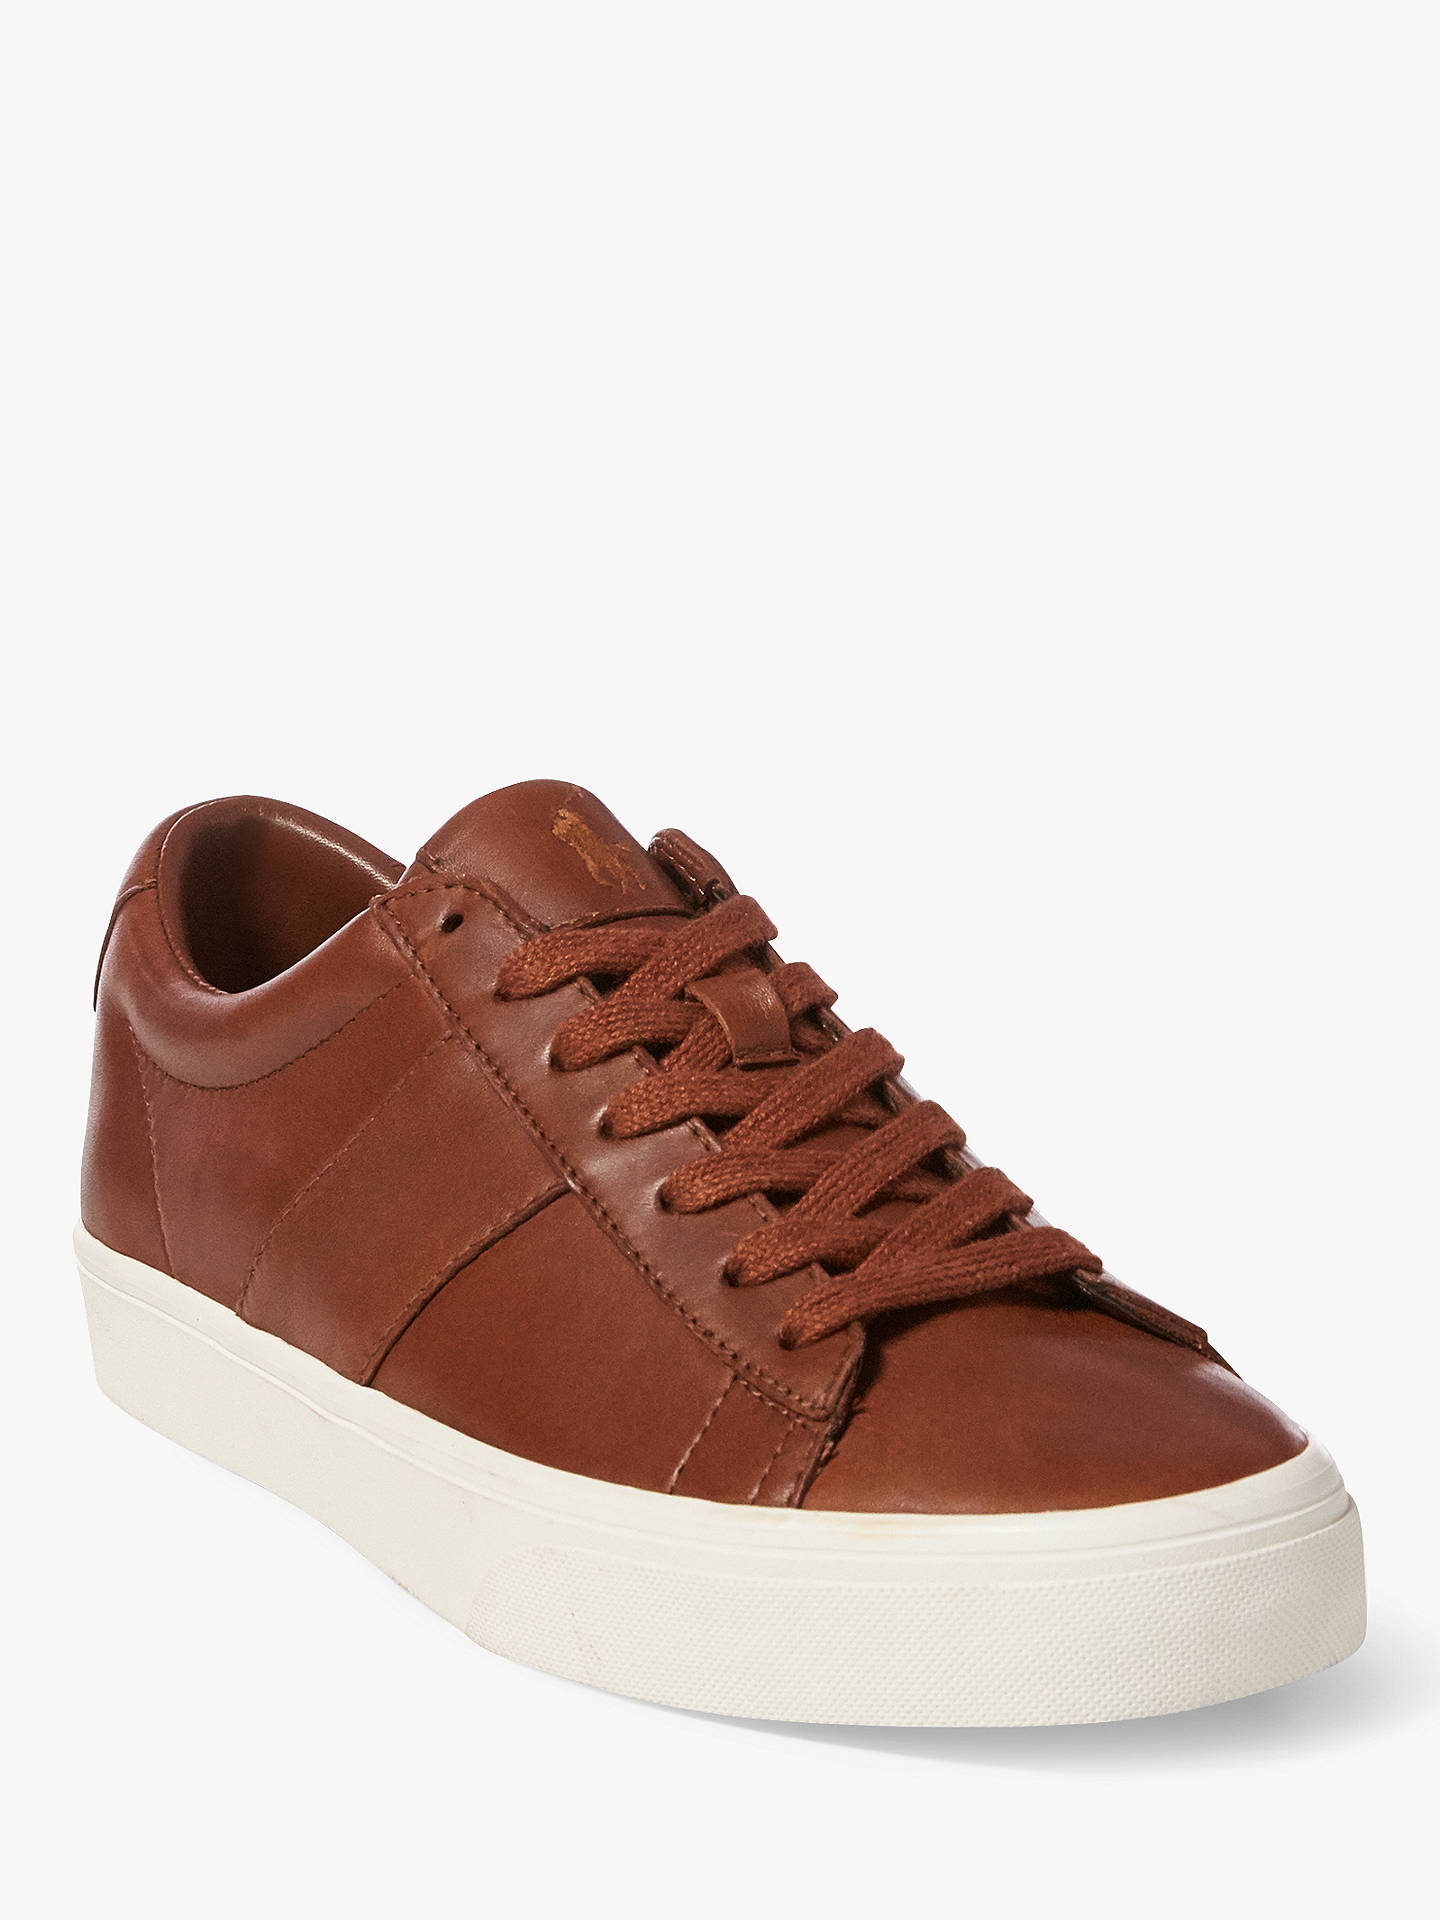 Buy Polo Ralph Lauren Sayer Trainers, Tan, 8 Online at johnlewis.com